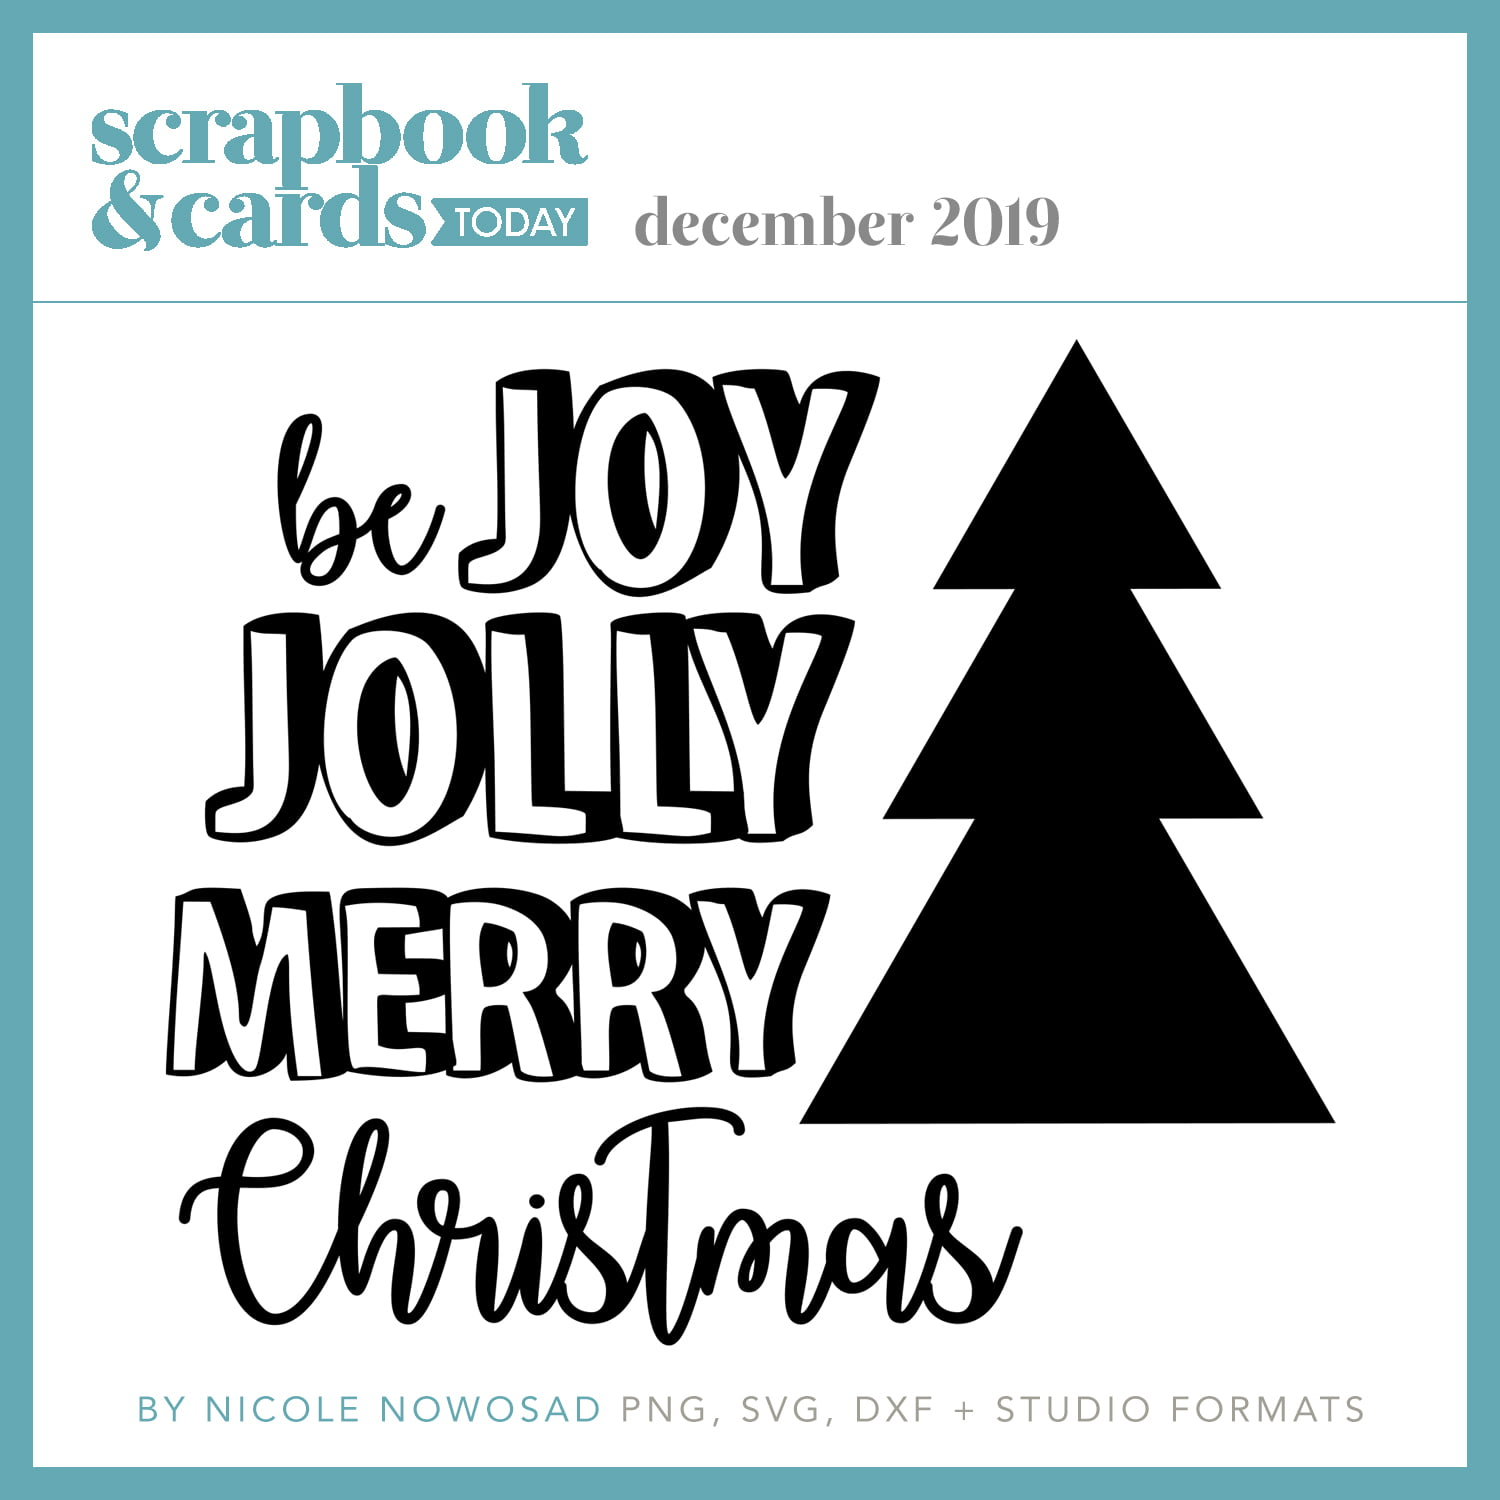 Scrapbook & Cards Today - December Free Cut File